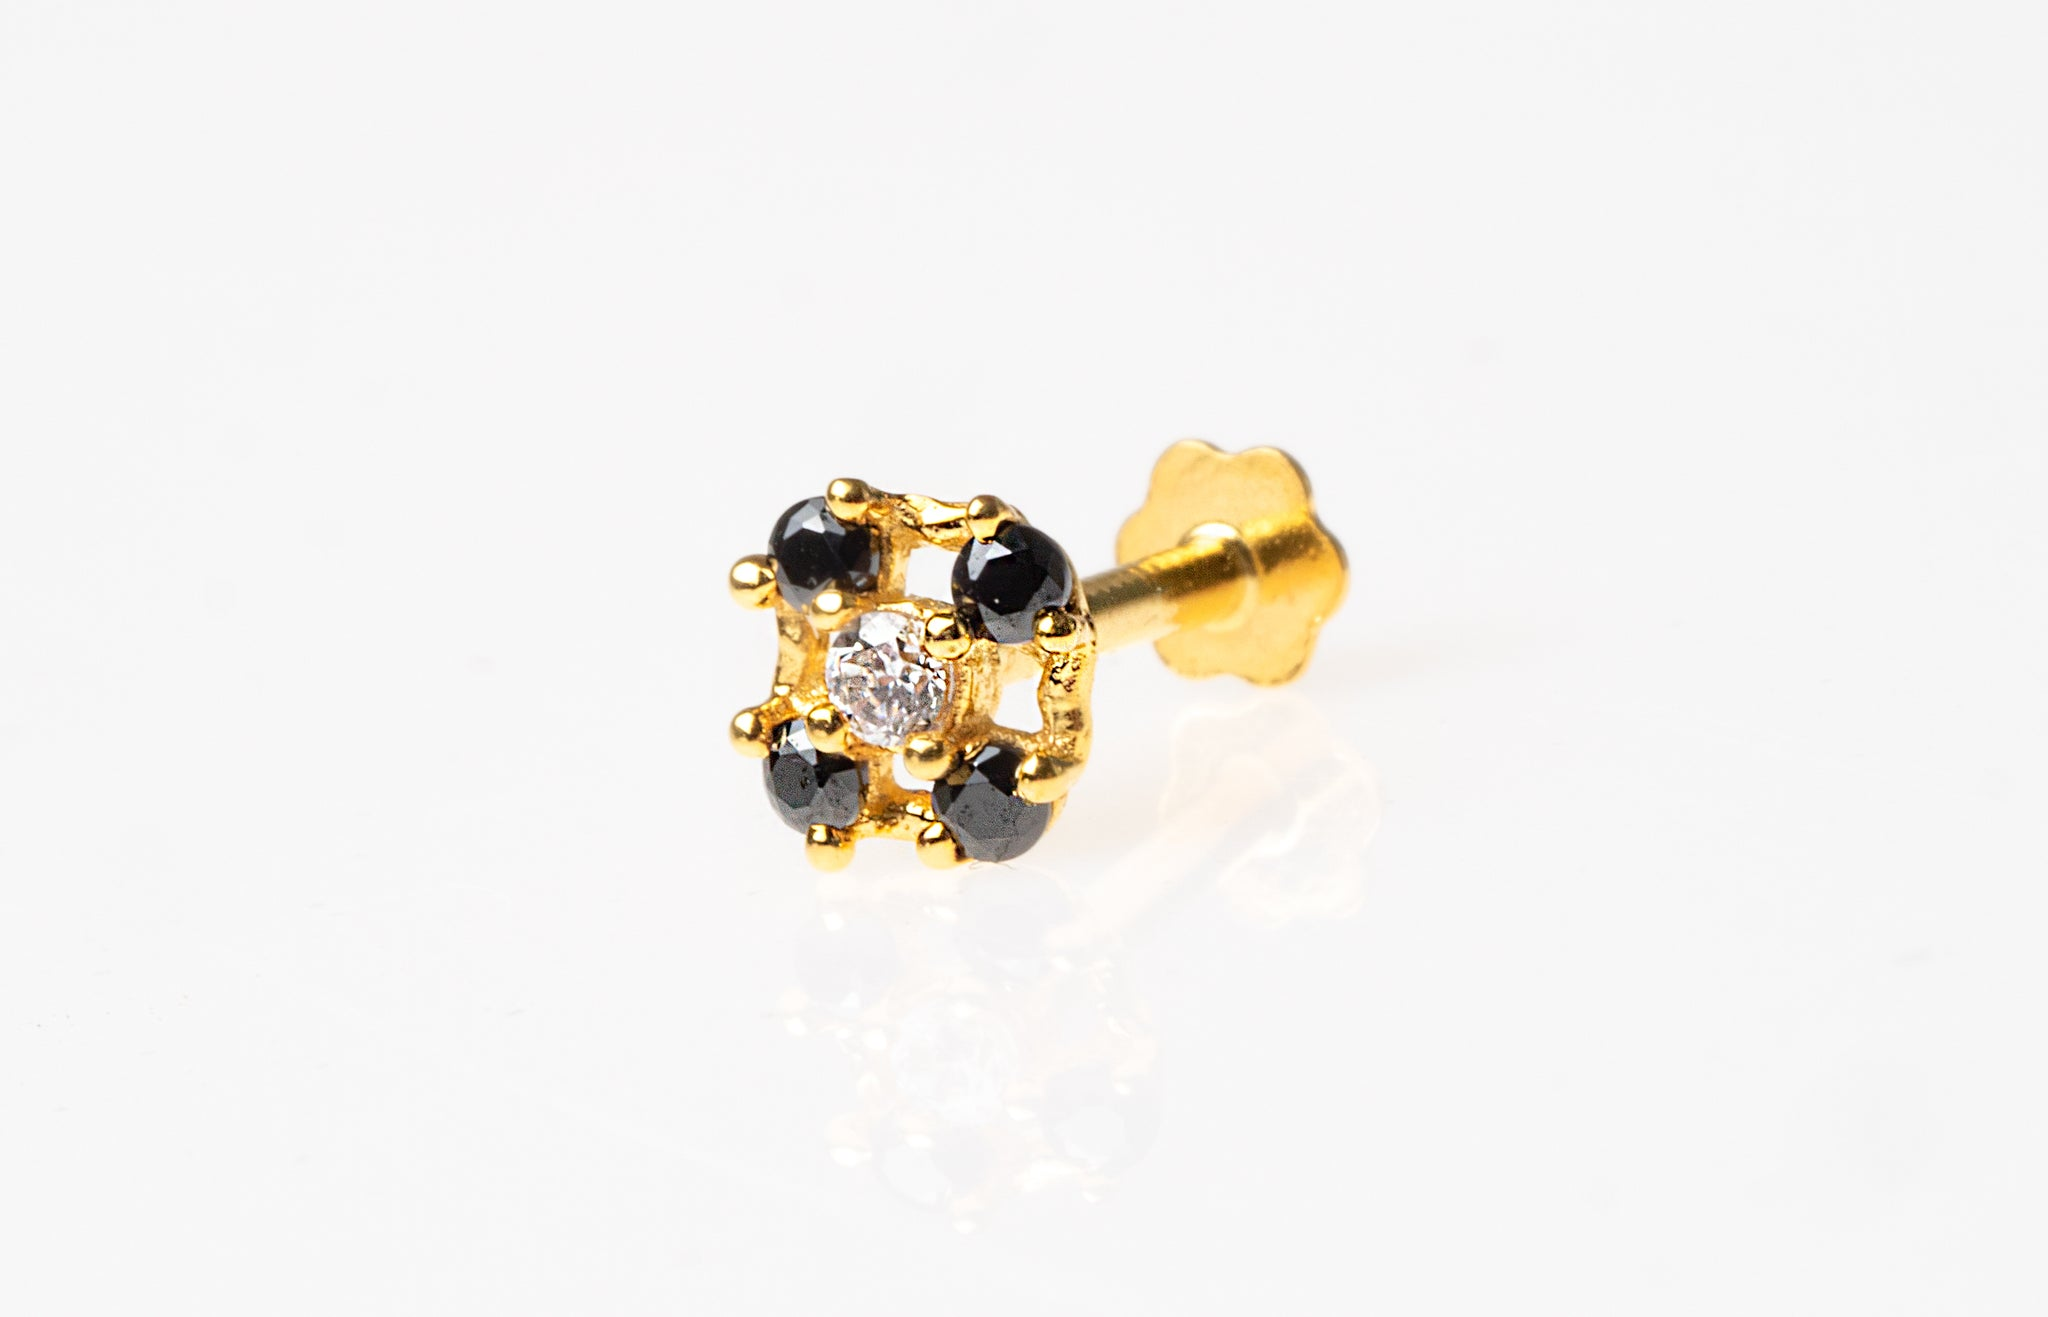 18ct Yellow Gold Screw Back Nose Stud set with 4 Black and 1 White Cubic Zirconias NIP-5-580h